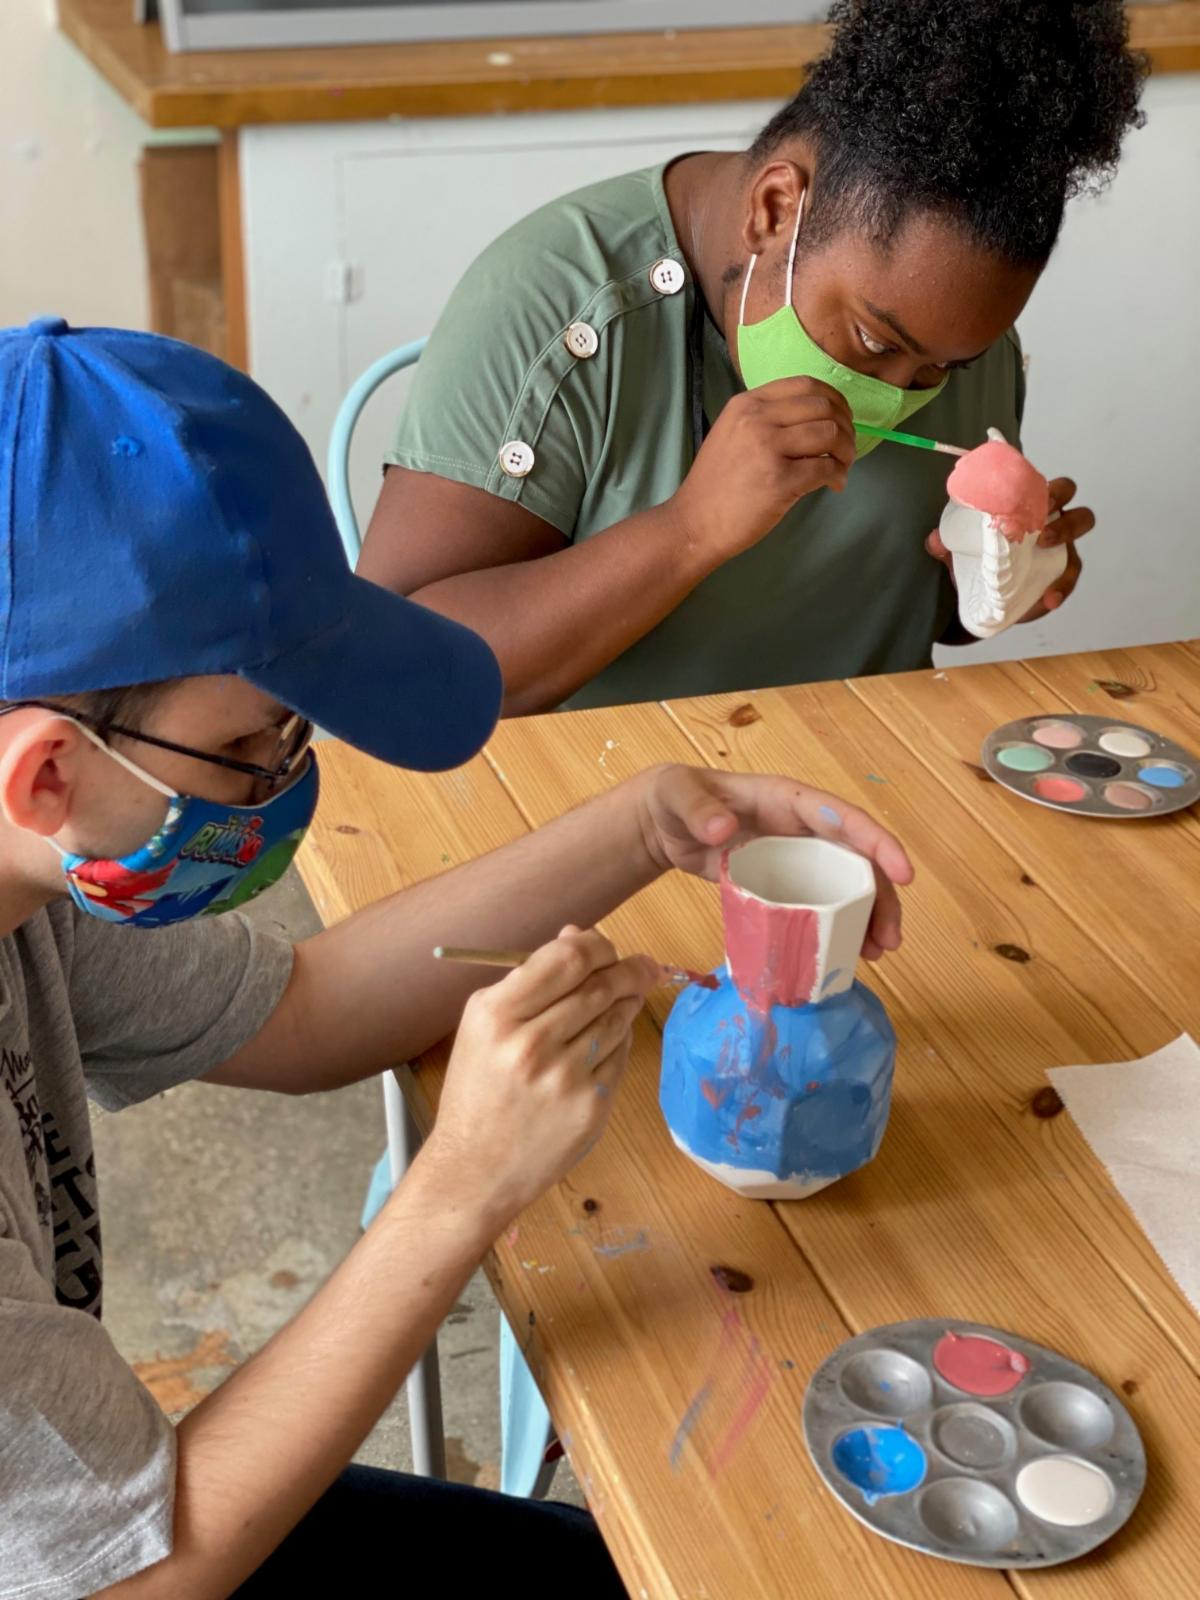 A boy and a girl painting pottery at a table